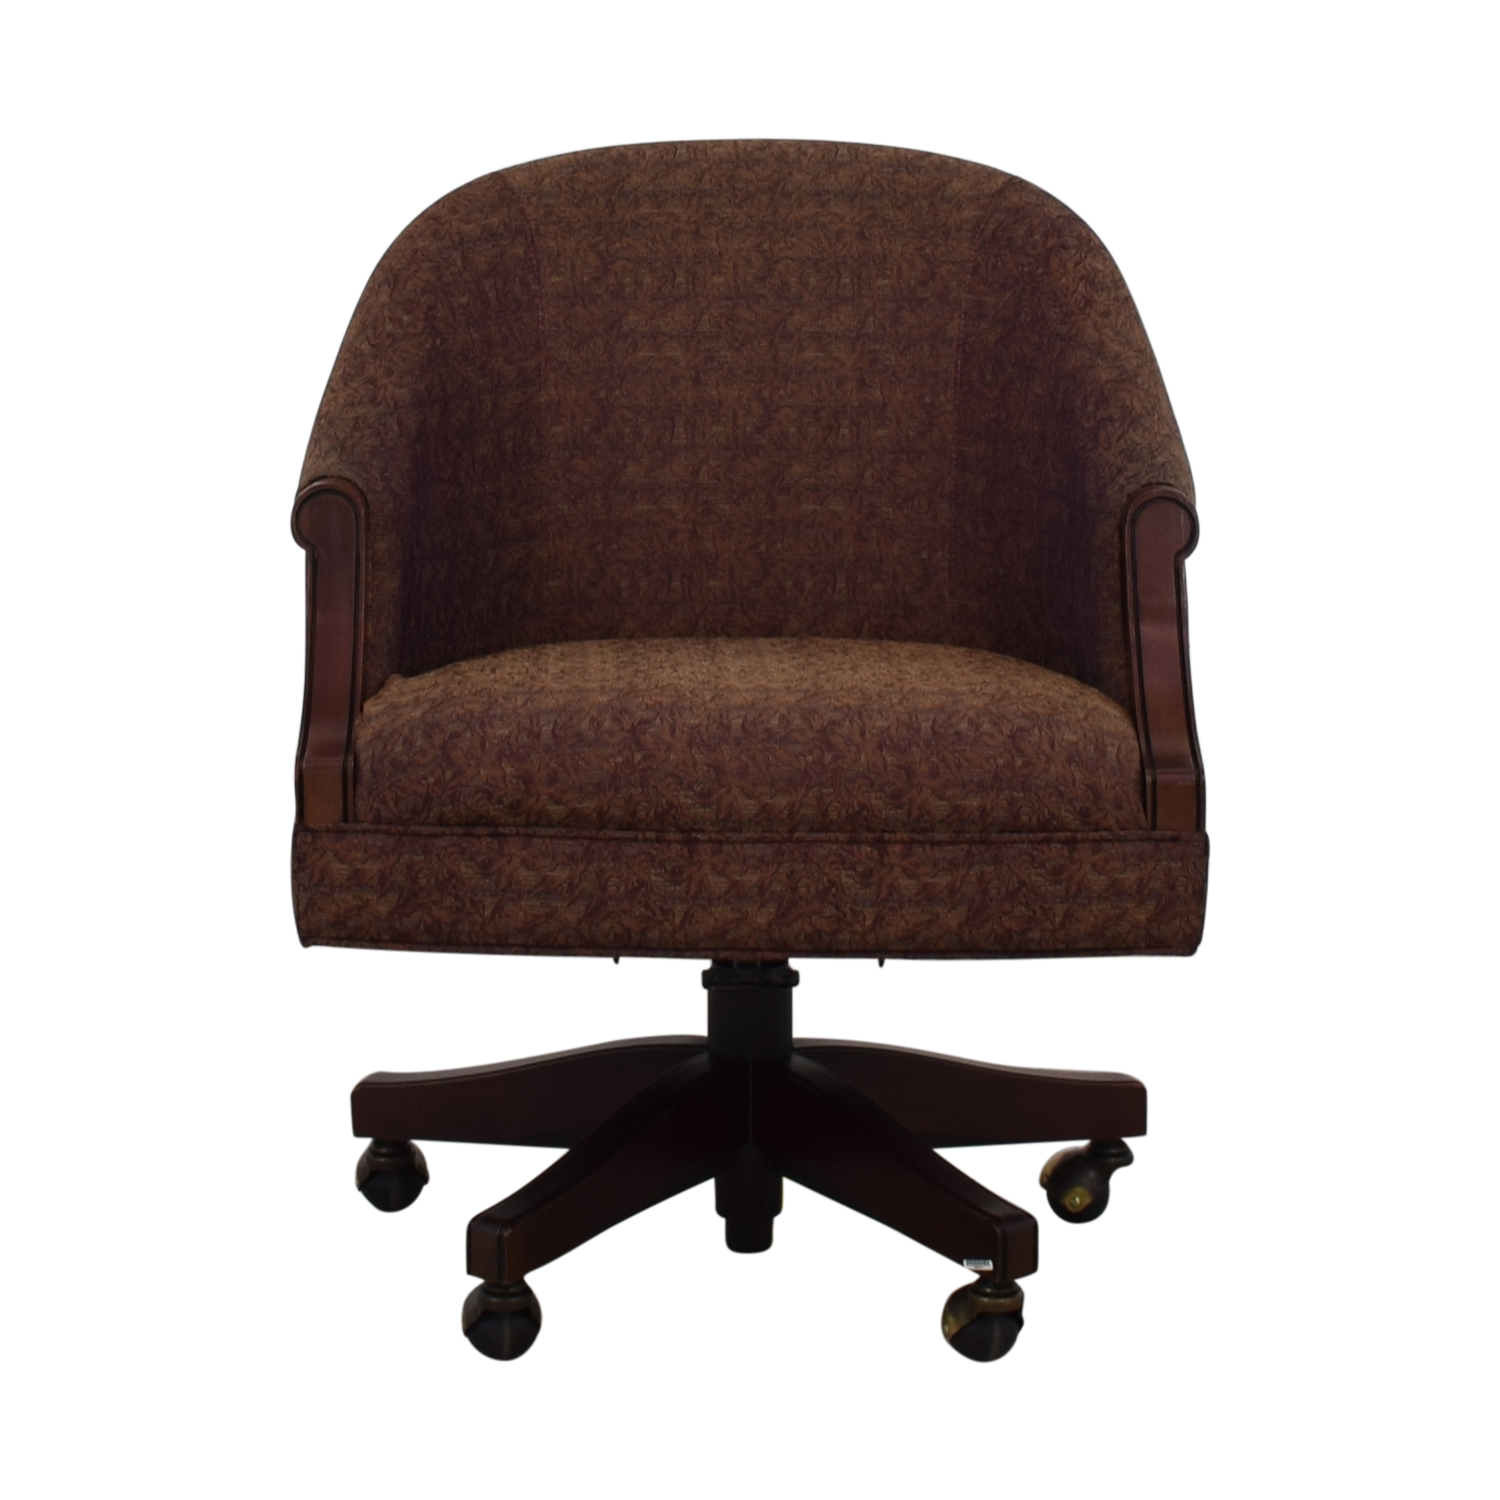 Kimball Kimball Independence Newcastle Swivel Chair pa